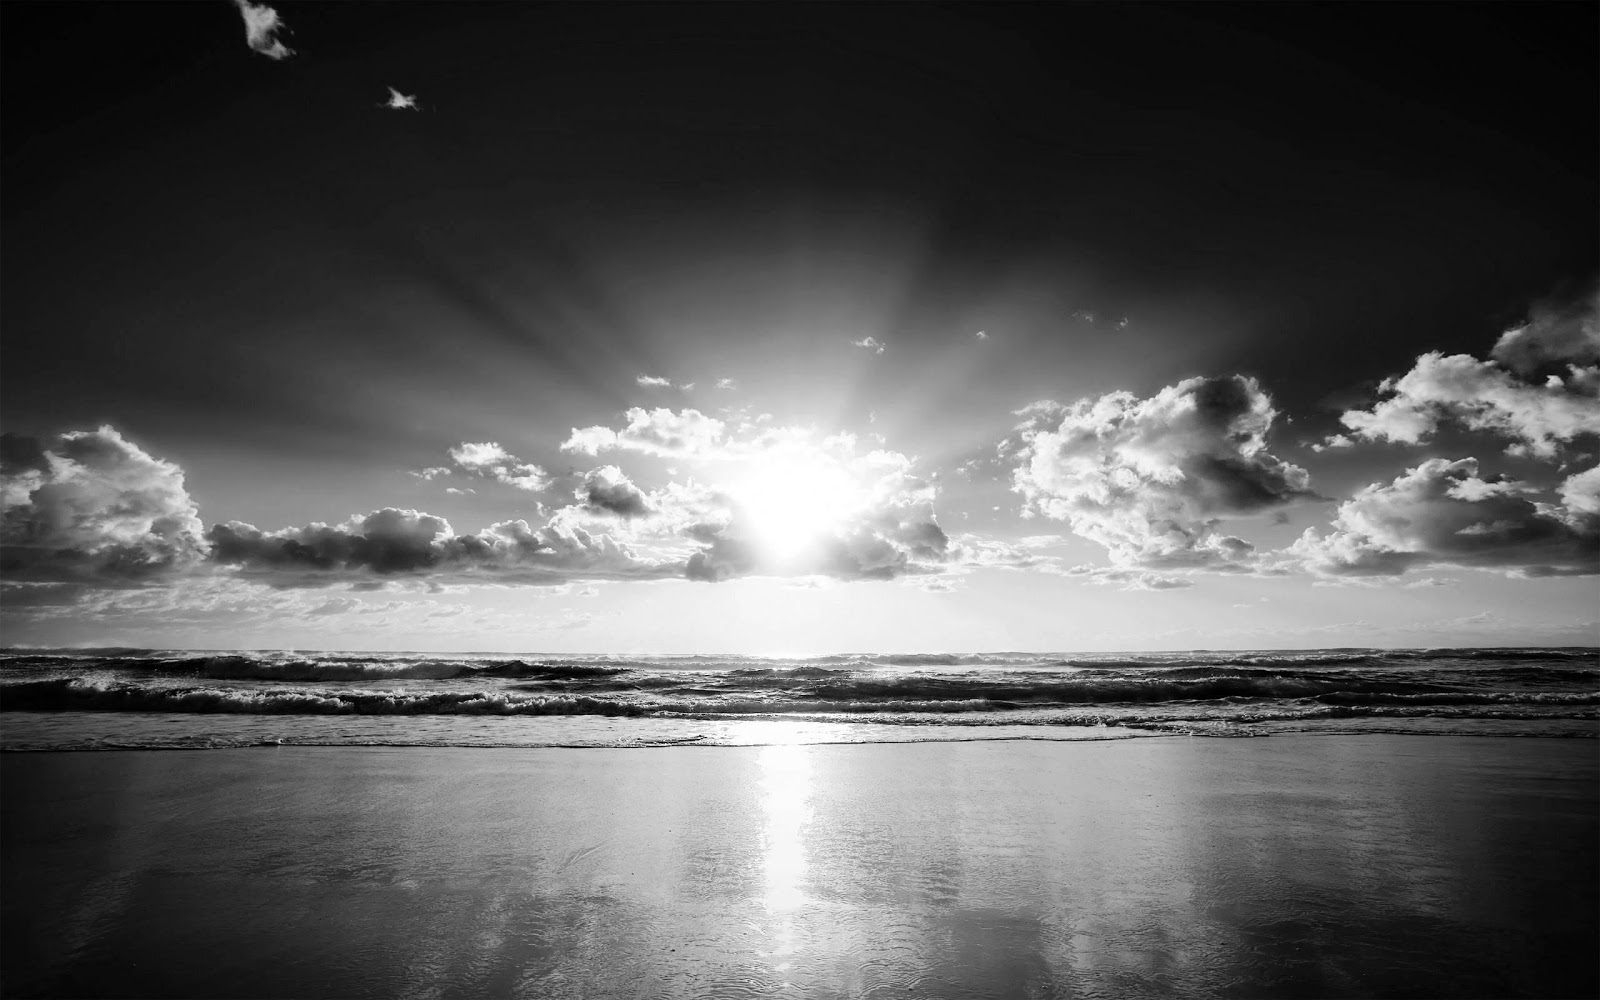 Black White Hd Wallpaper: Black And White Wallpapers: Black And White Beach